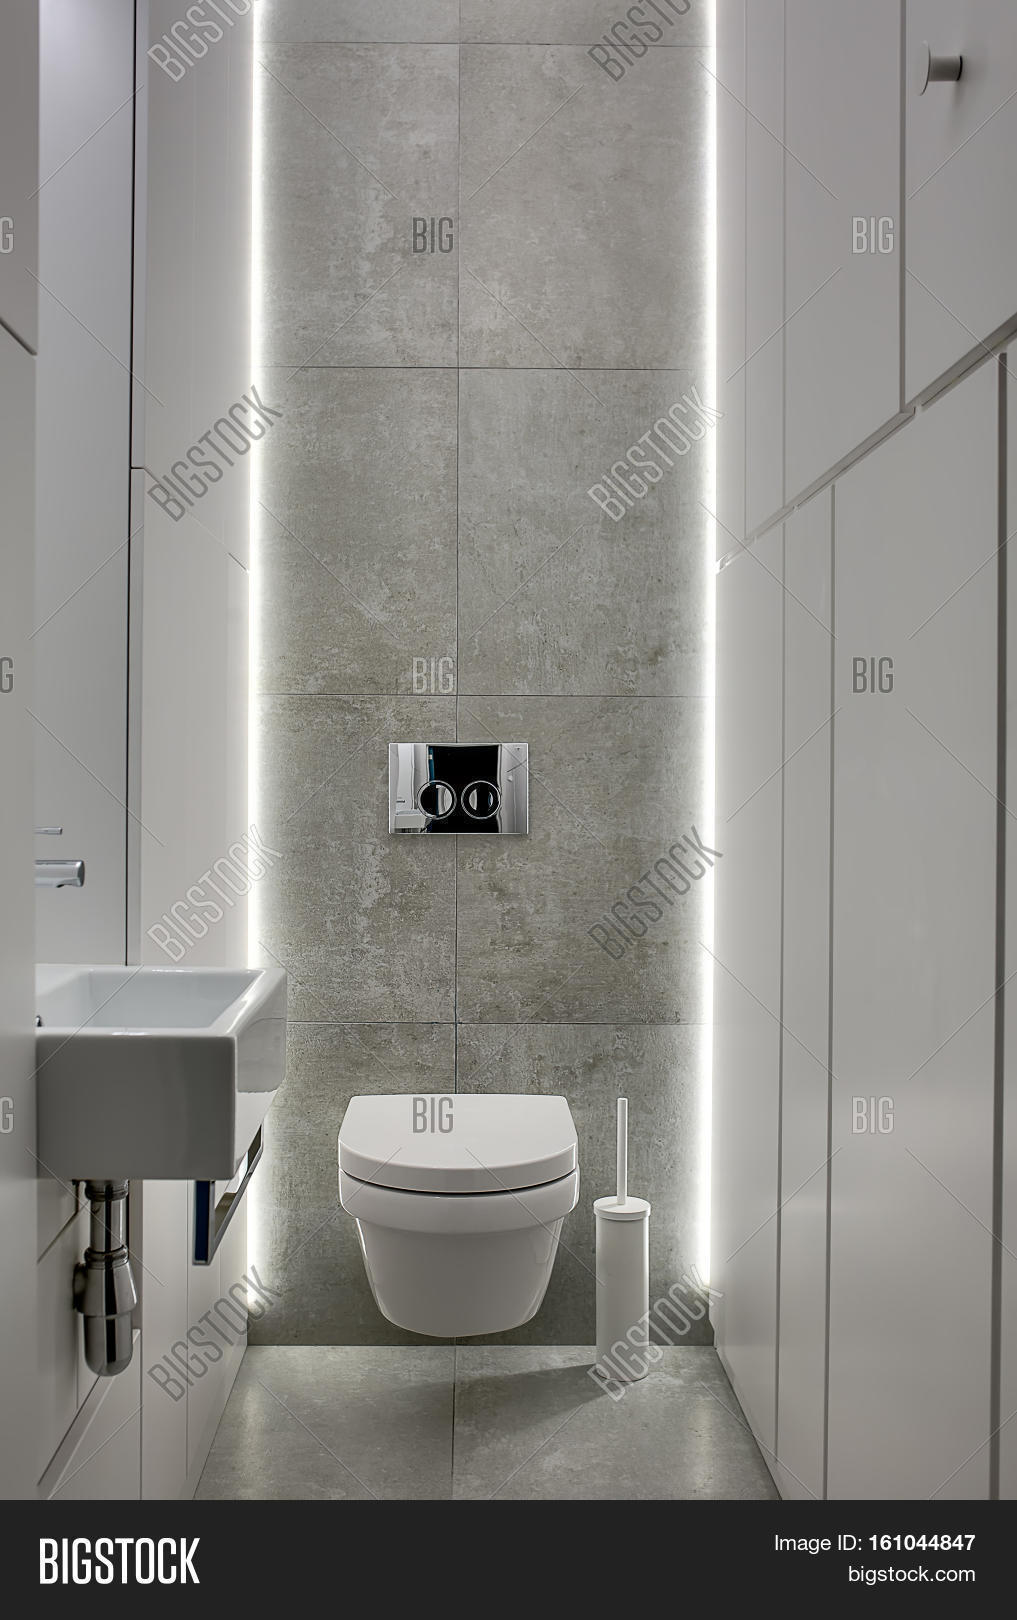 bathroom lockers. Restroom In A Modern Style With Gray Tiles And White Lockers. There Is Bathroom Lockers